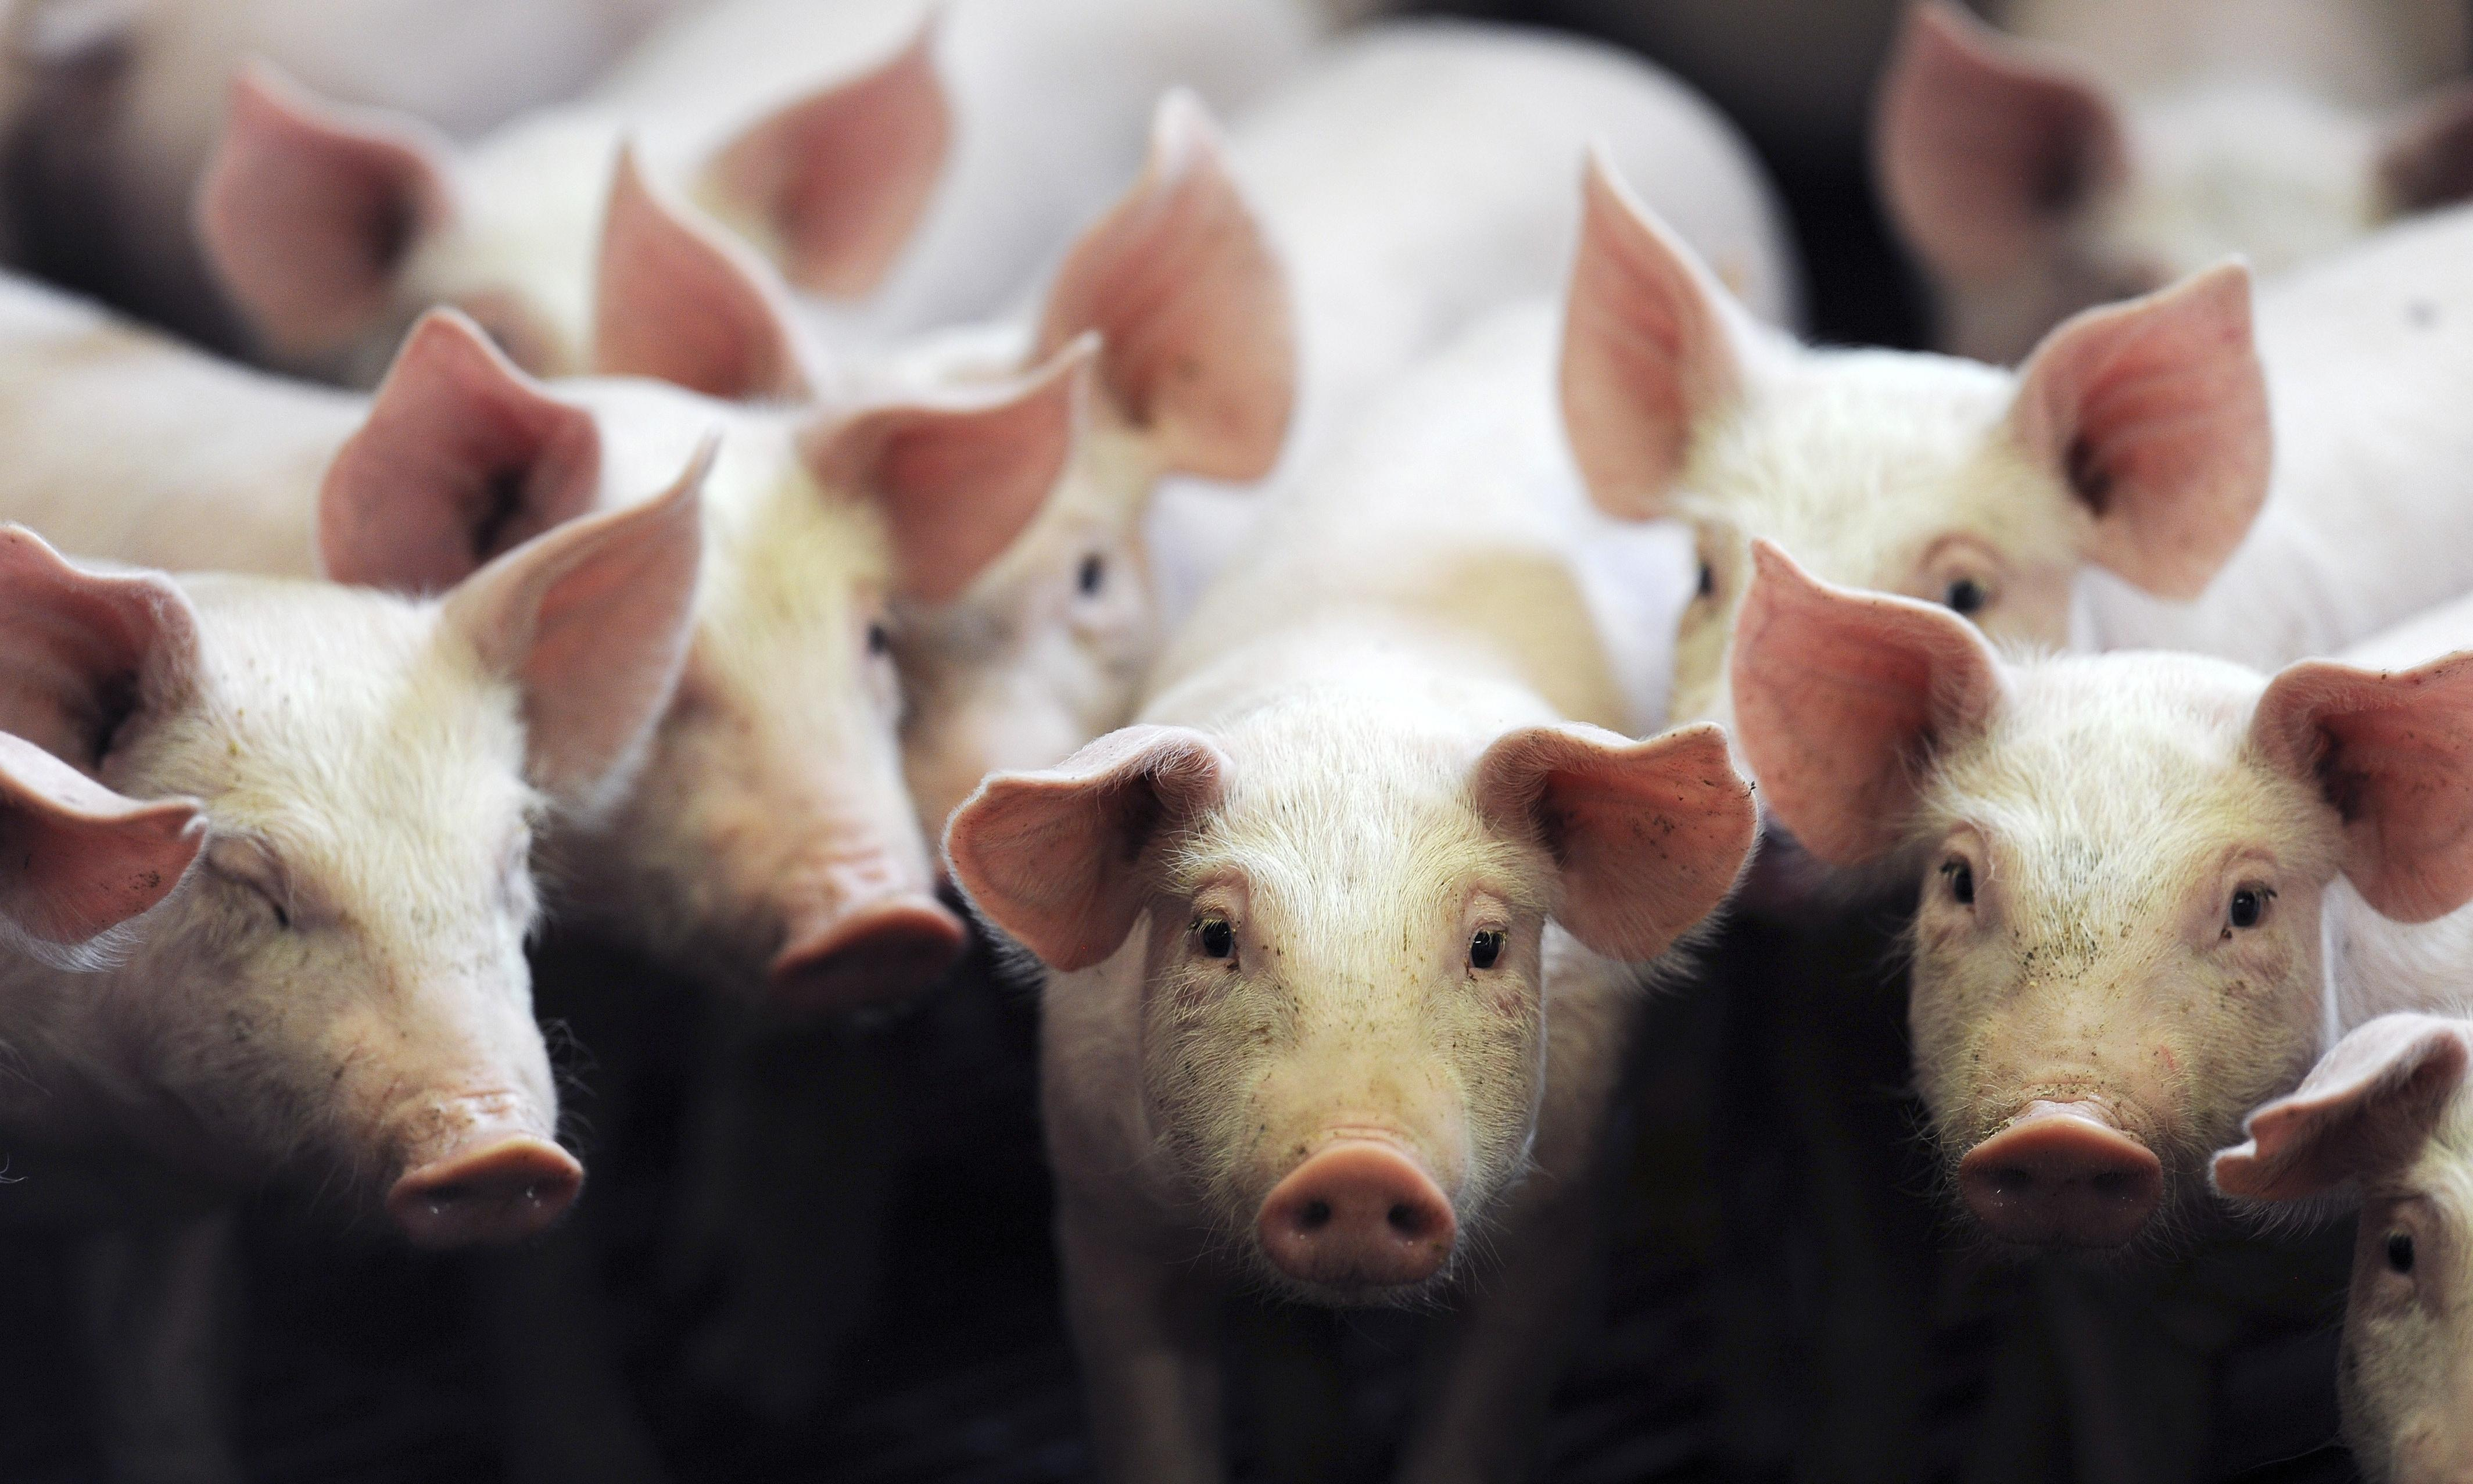 Researchers 'reboot' pig brains hours after animals died